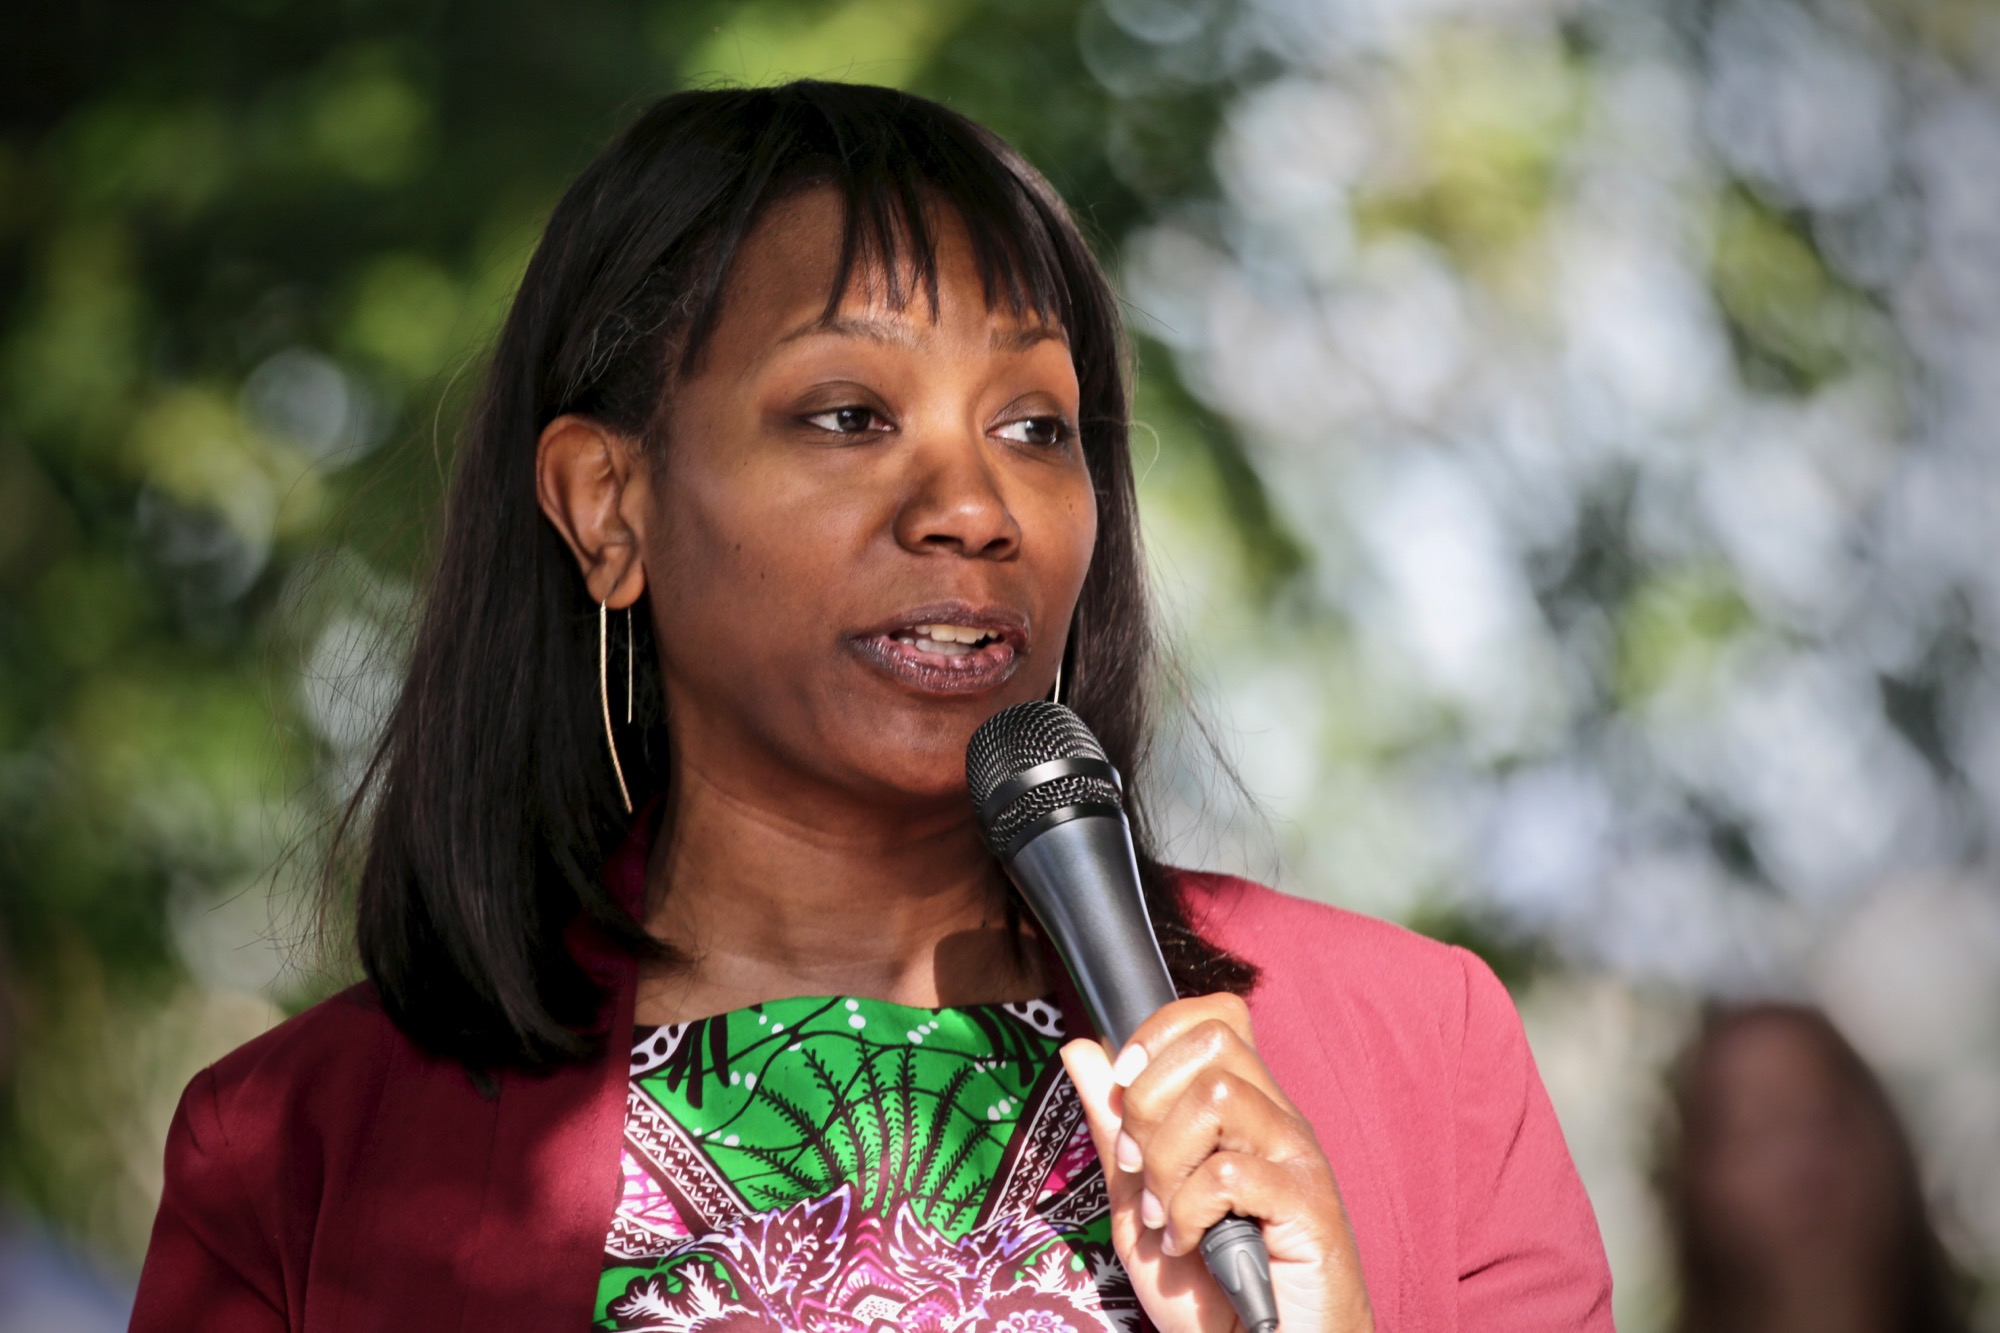 Pastor and UC Colorado Springs Professor Stephany Rose Spauldingat apicnic-style candidate forum hosted byIndivisible Denver to introduce Democrats running to unseat Republican U.S. Sen. Cory Gardner in 2020, held at Barnum Park on Sunday, June 9, 2019.